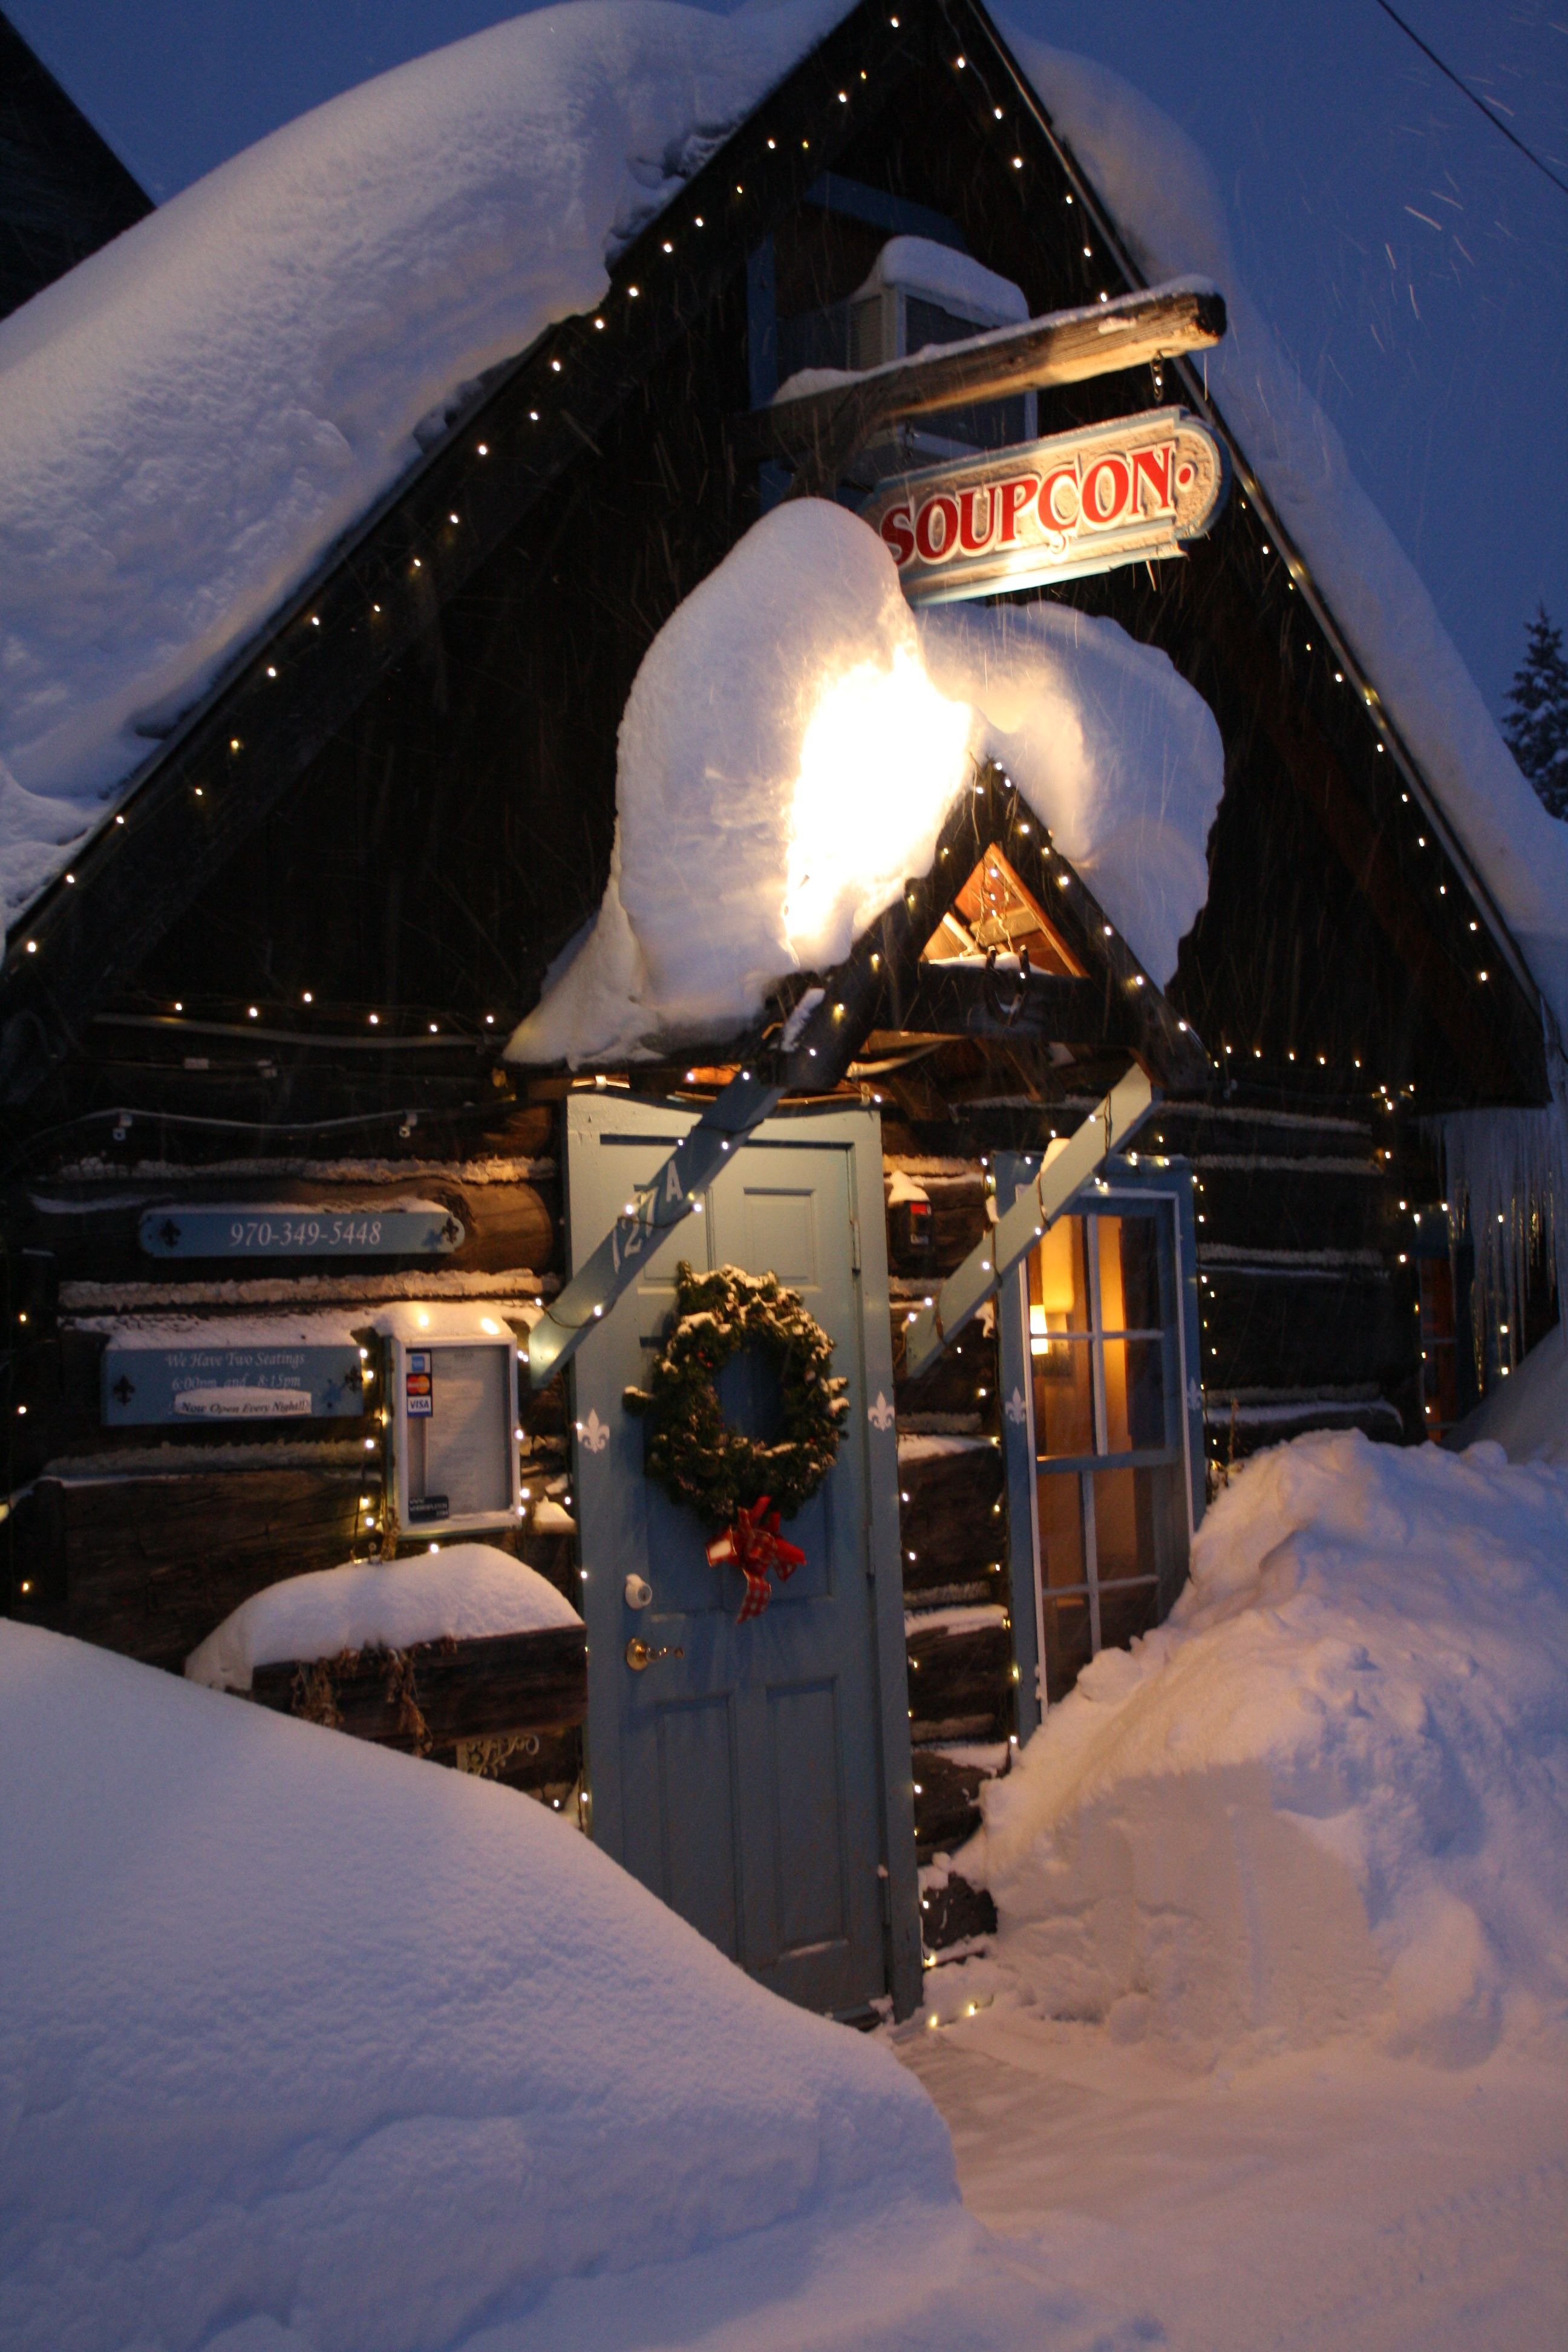 Cozy Cabin Dining At Soupcon Is A Perfect Place For That Special Occasion  Or Those Looking For An Amazing Dining Experience In Crested Butte.